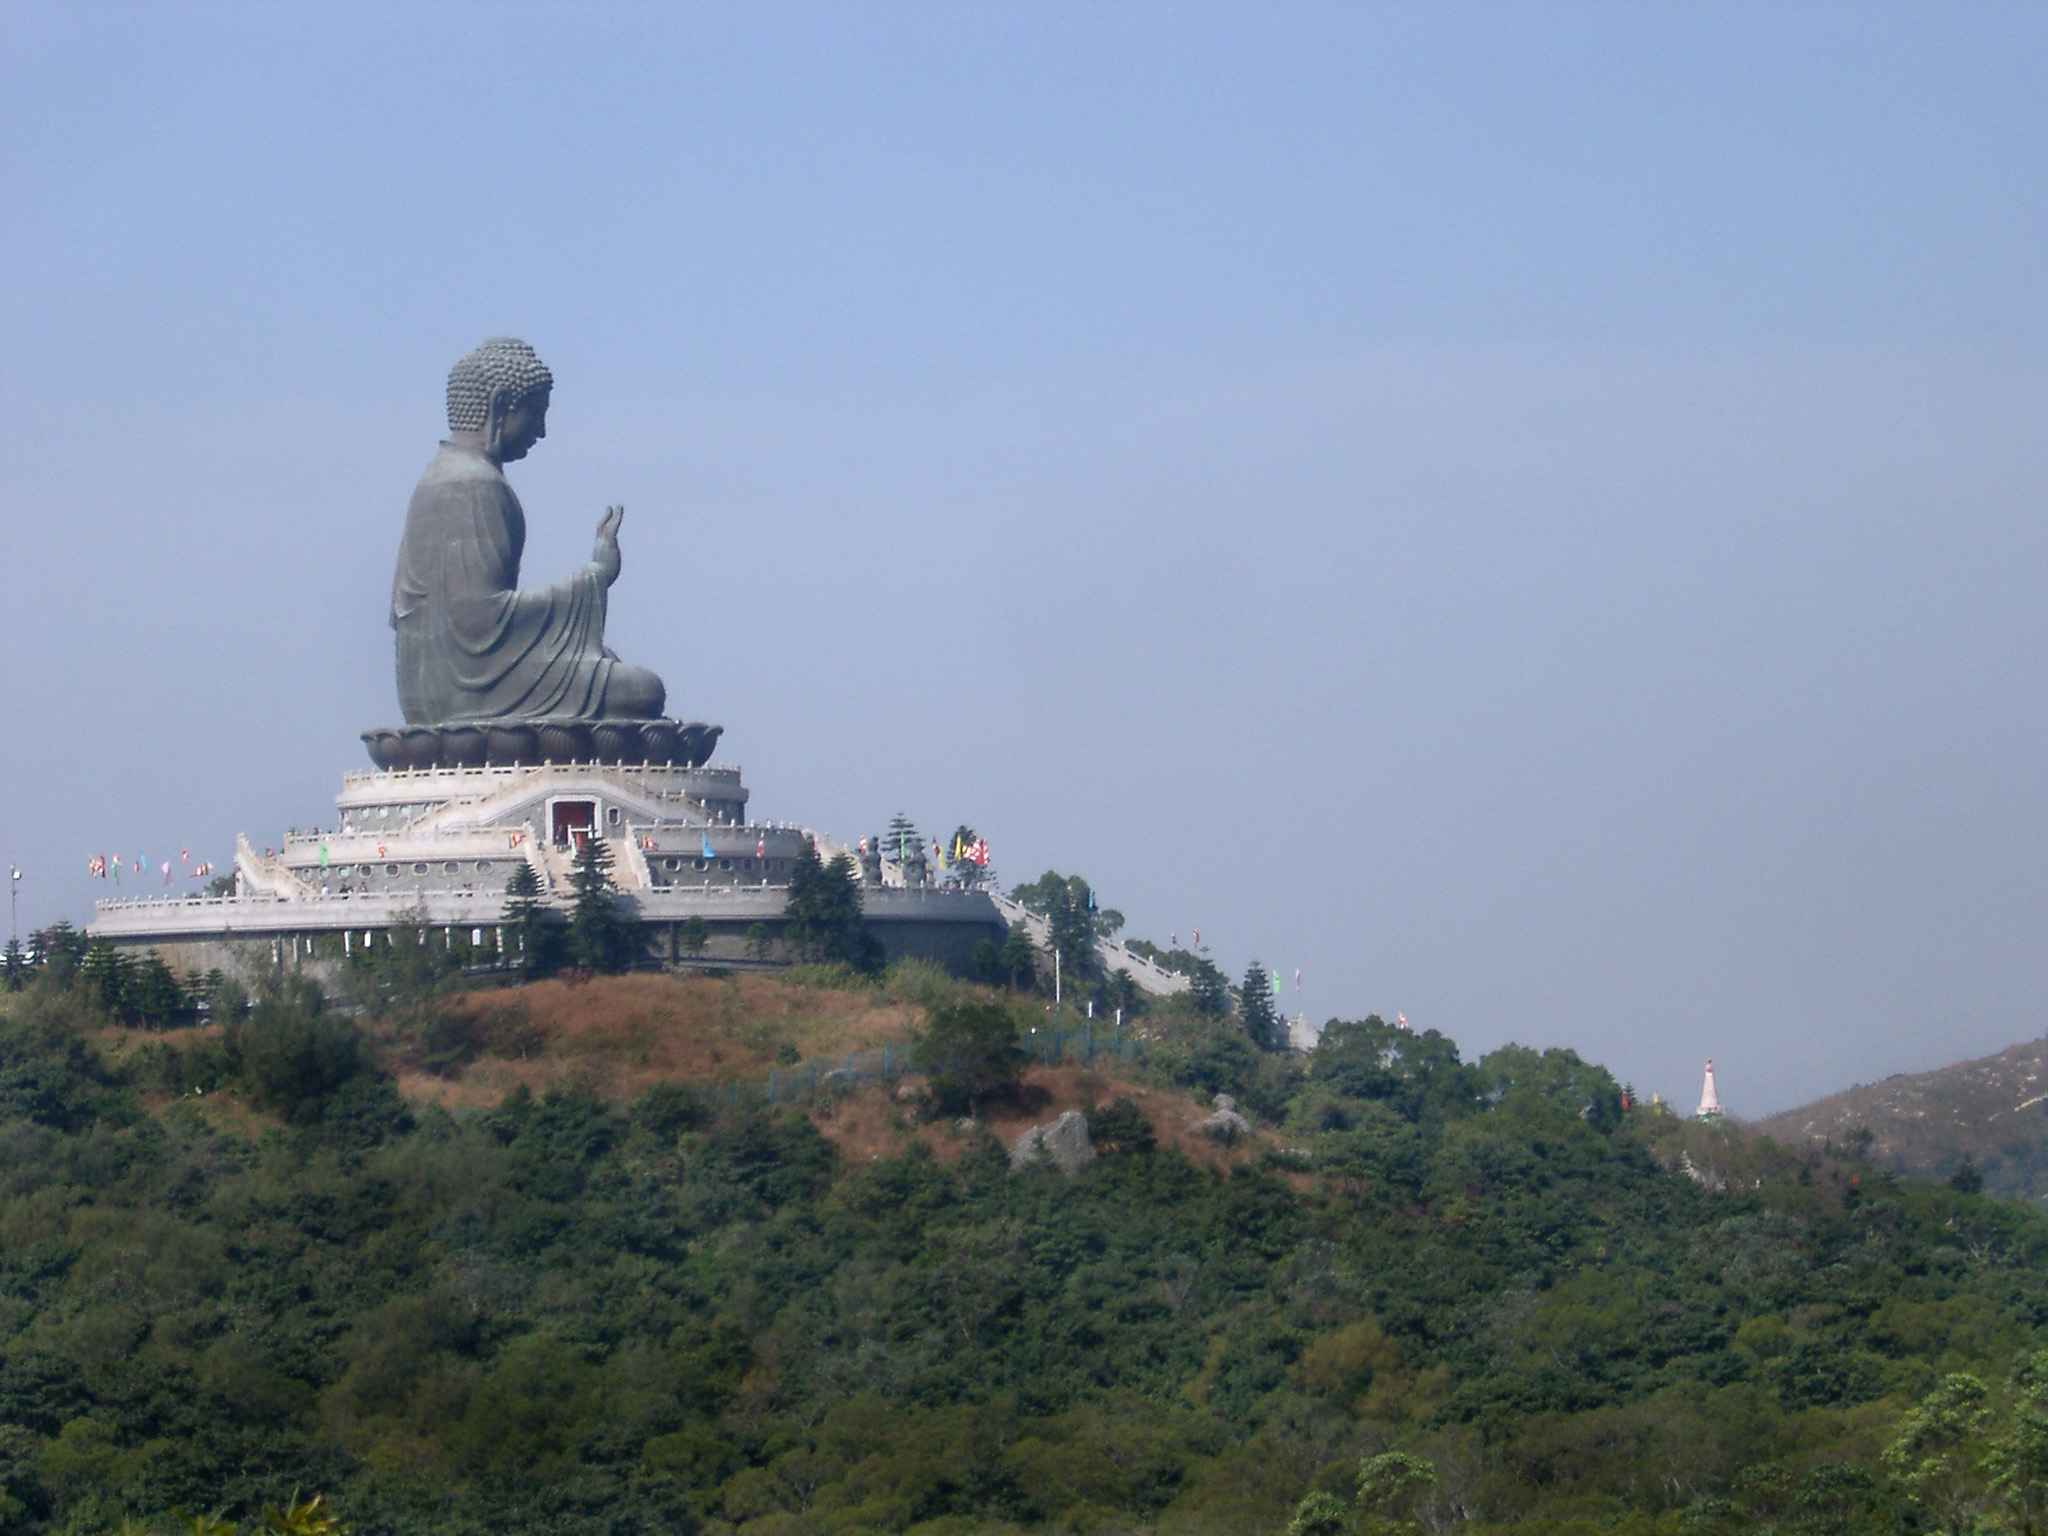 Tian Tan Big Buddha on Hilltop at Ngong Ping, Lantau Island, Hong Kong, China